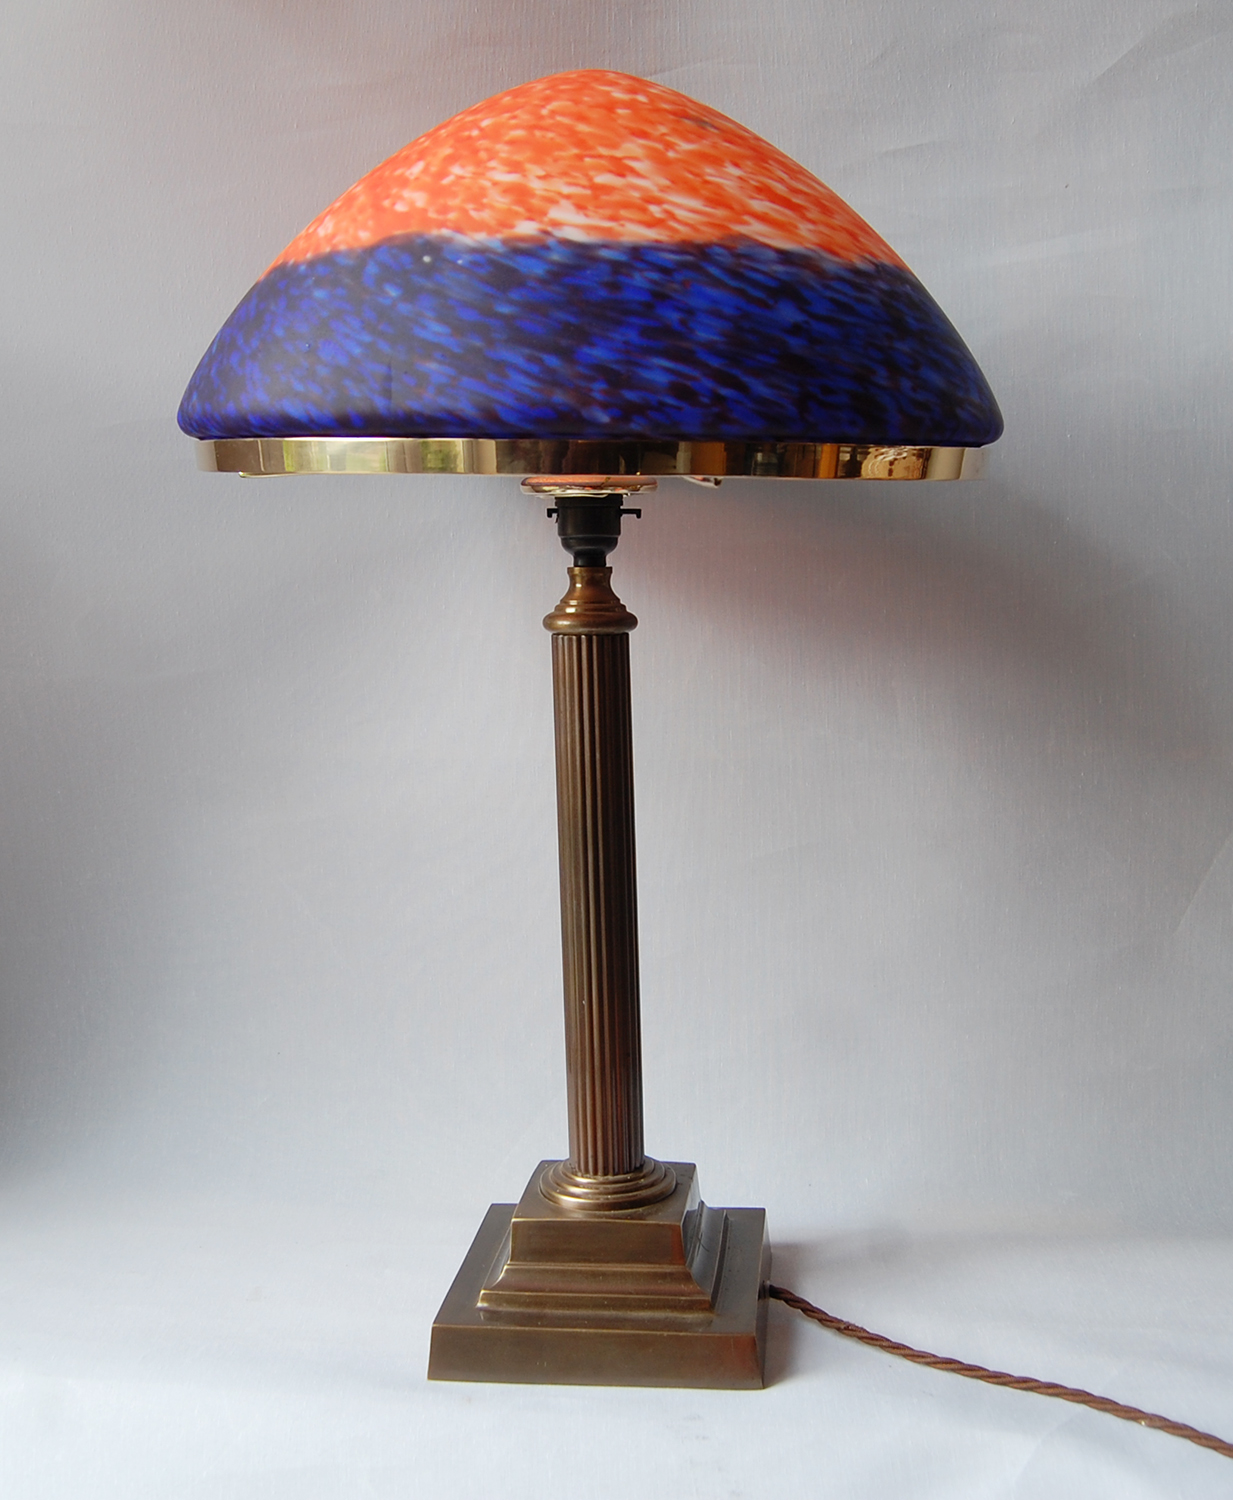 The Trafalgar Table Lamp In Antique Finish With Blue